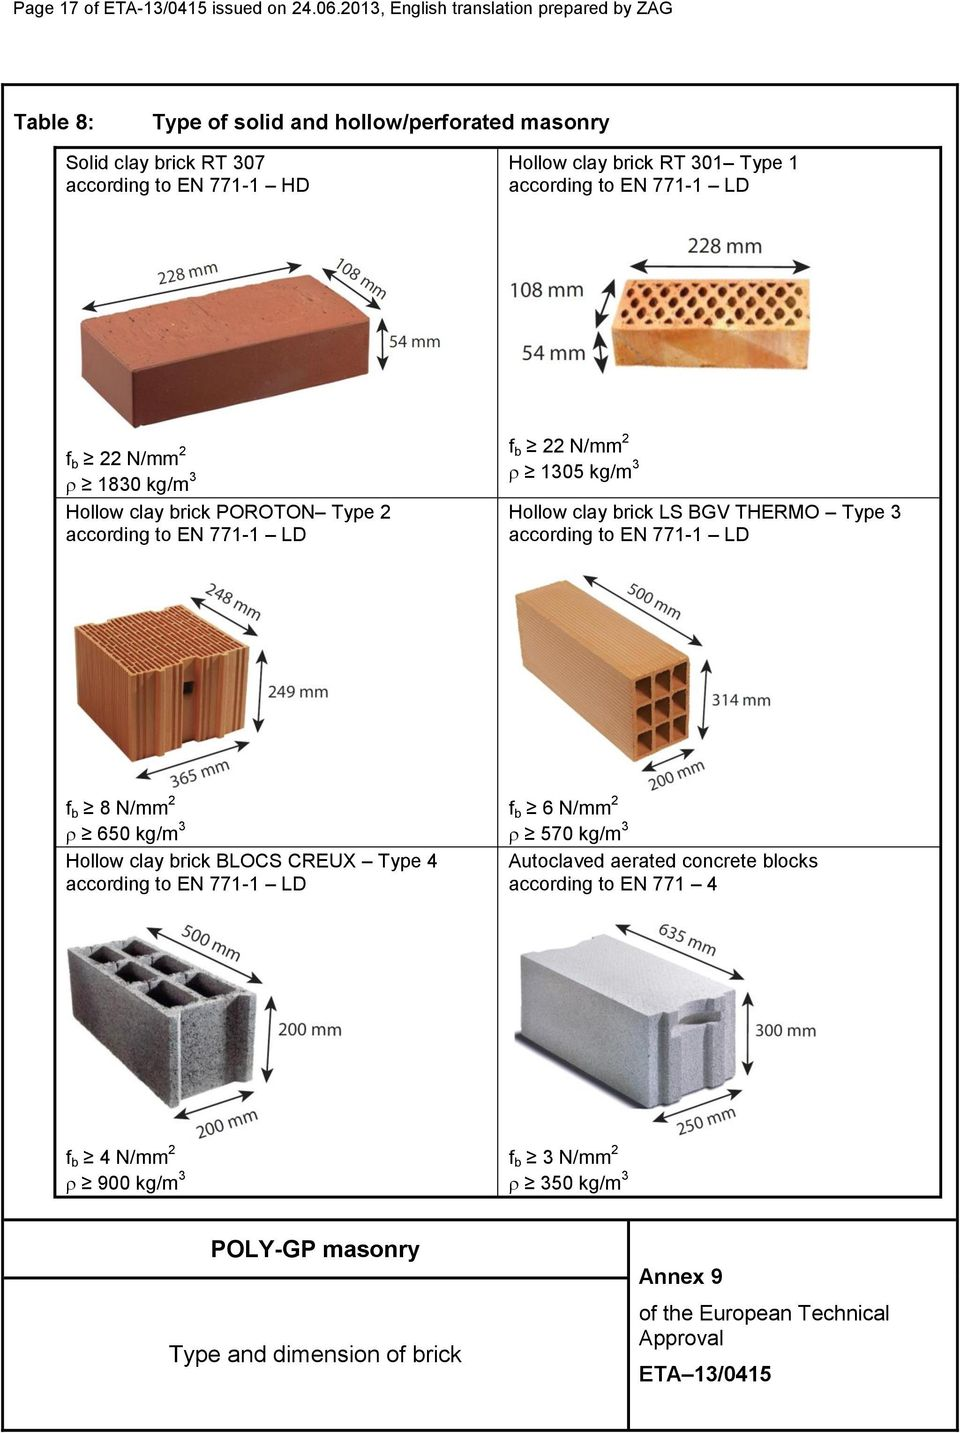 301 Type 1 according to EN 771-1 LD f b 22 N/mm 2 1830 kg/m 3 Hollow clay brick POROTON Type 2 according to EN 771-1 LD f b 22 N/mm 2 1305 kg/m 3 Hollow clay brick